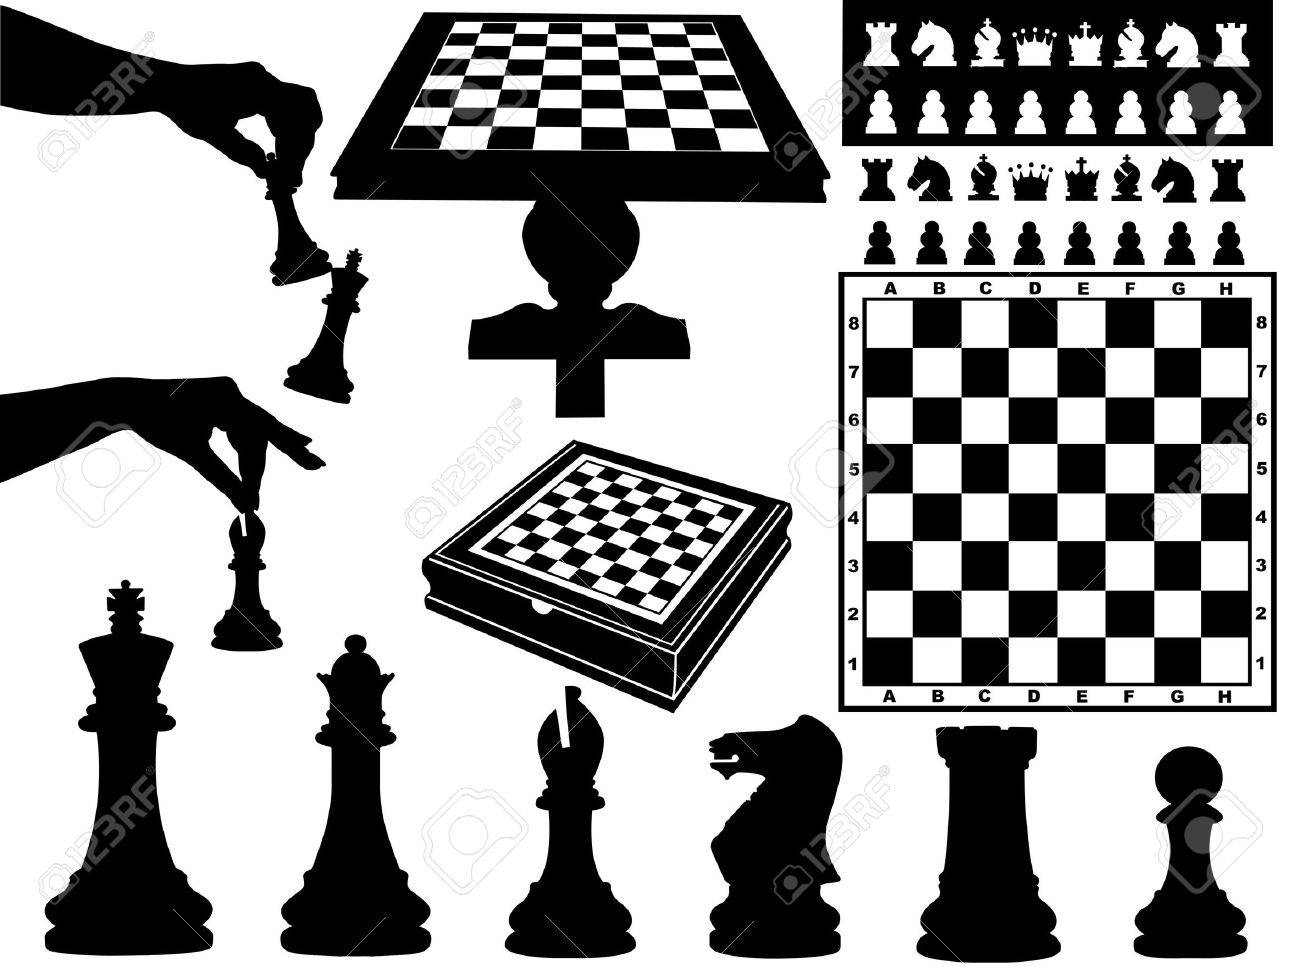 Illustration of chess pieces isolated on white - 11271954